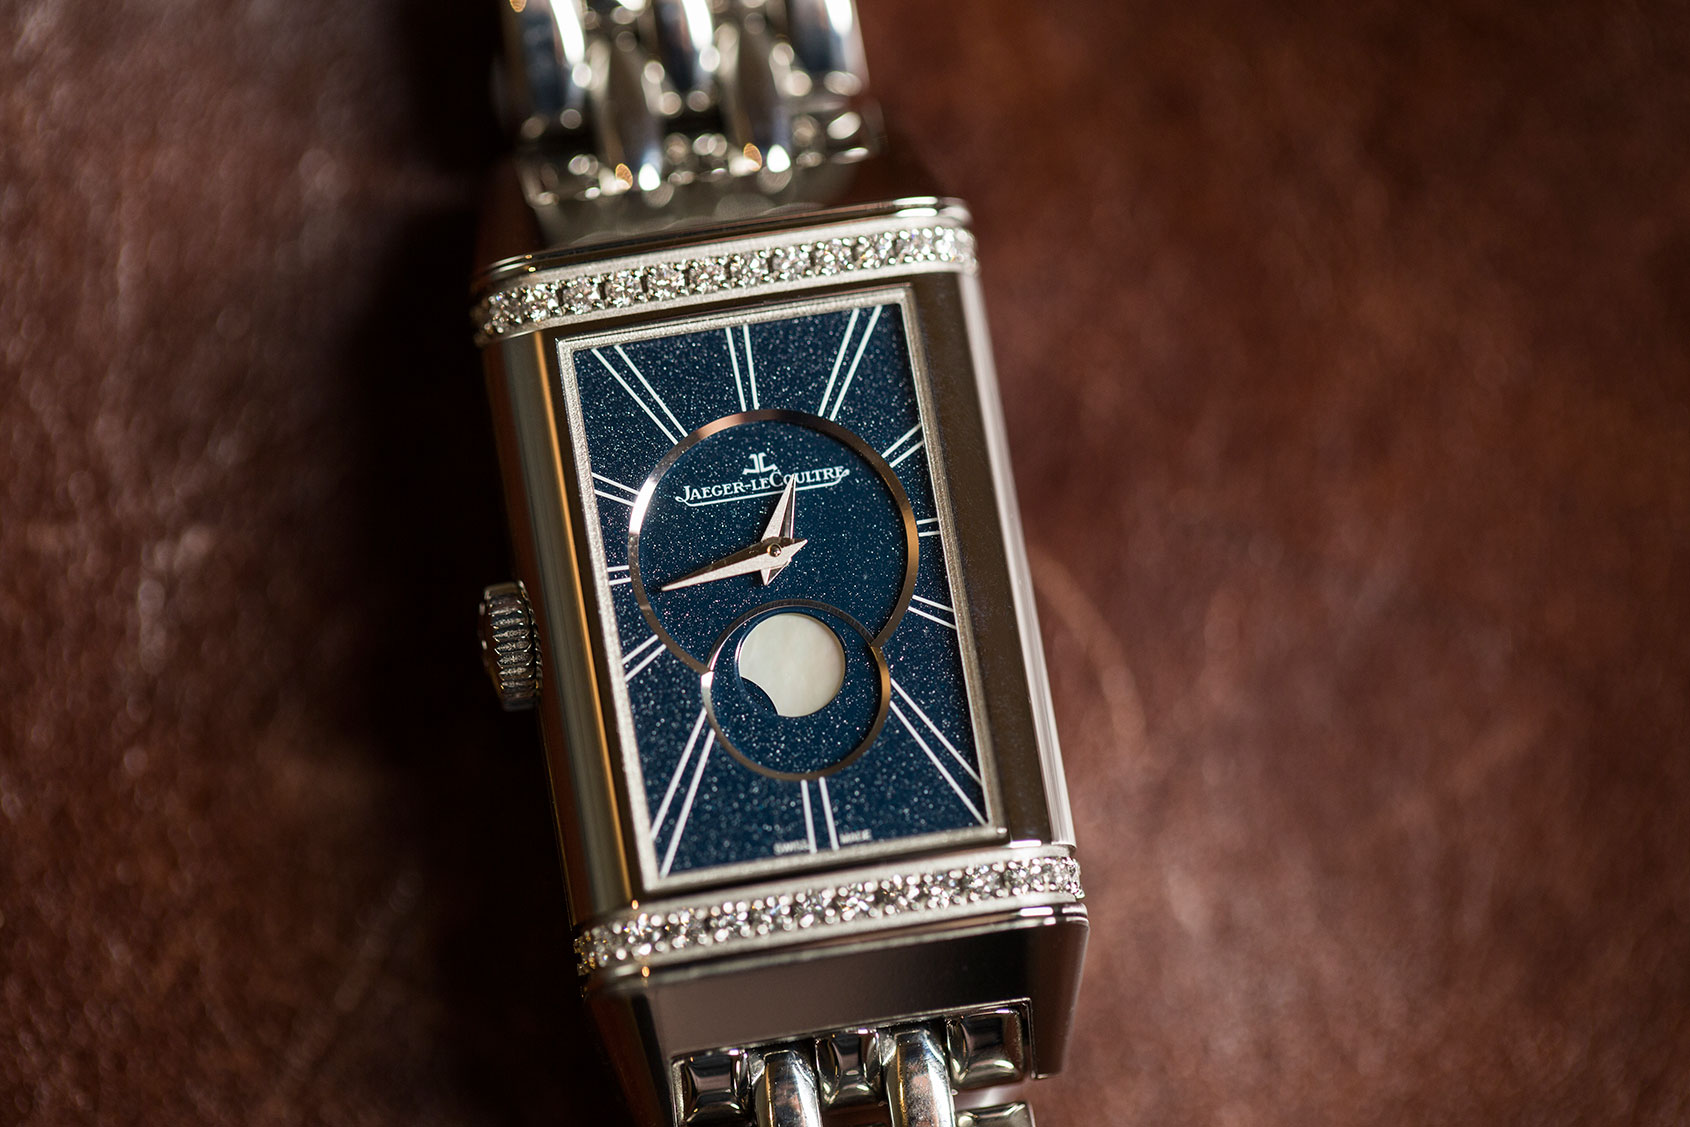 HANDS ON: the elegant double act of the Jaeger-LeCoultre Reverso One Duetto Moon